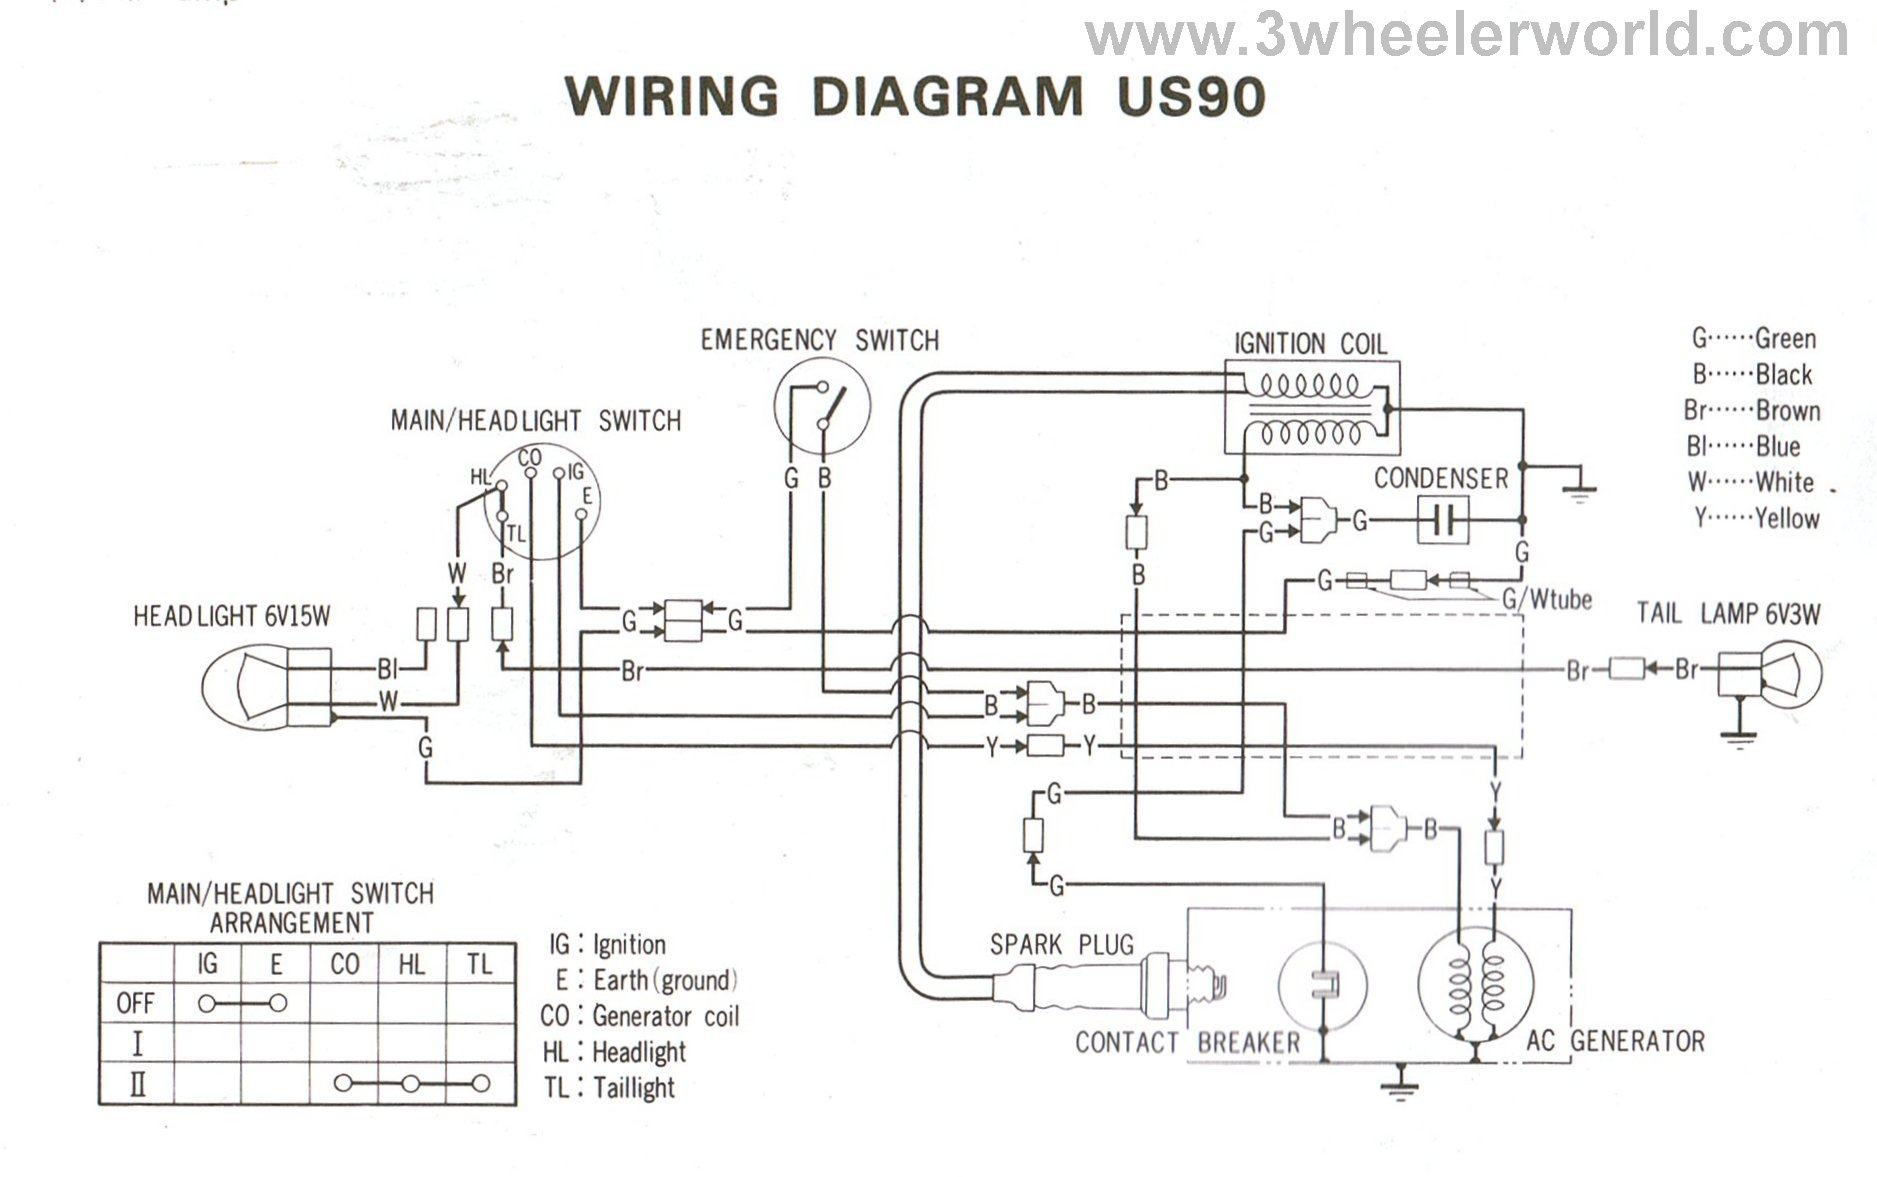 US90HM 3 wheeler world tech help honda wiring diagrams polaris scrambler wiring diagram at reclaimingppi.co